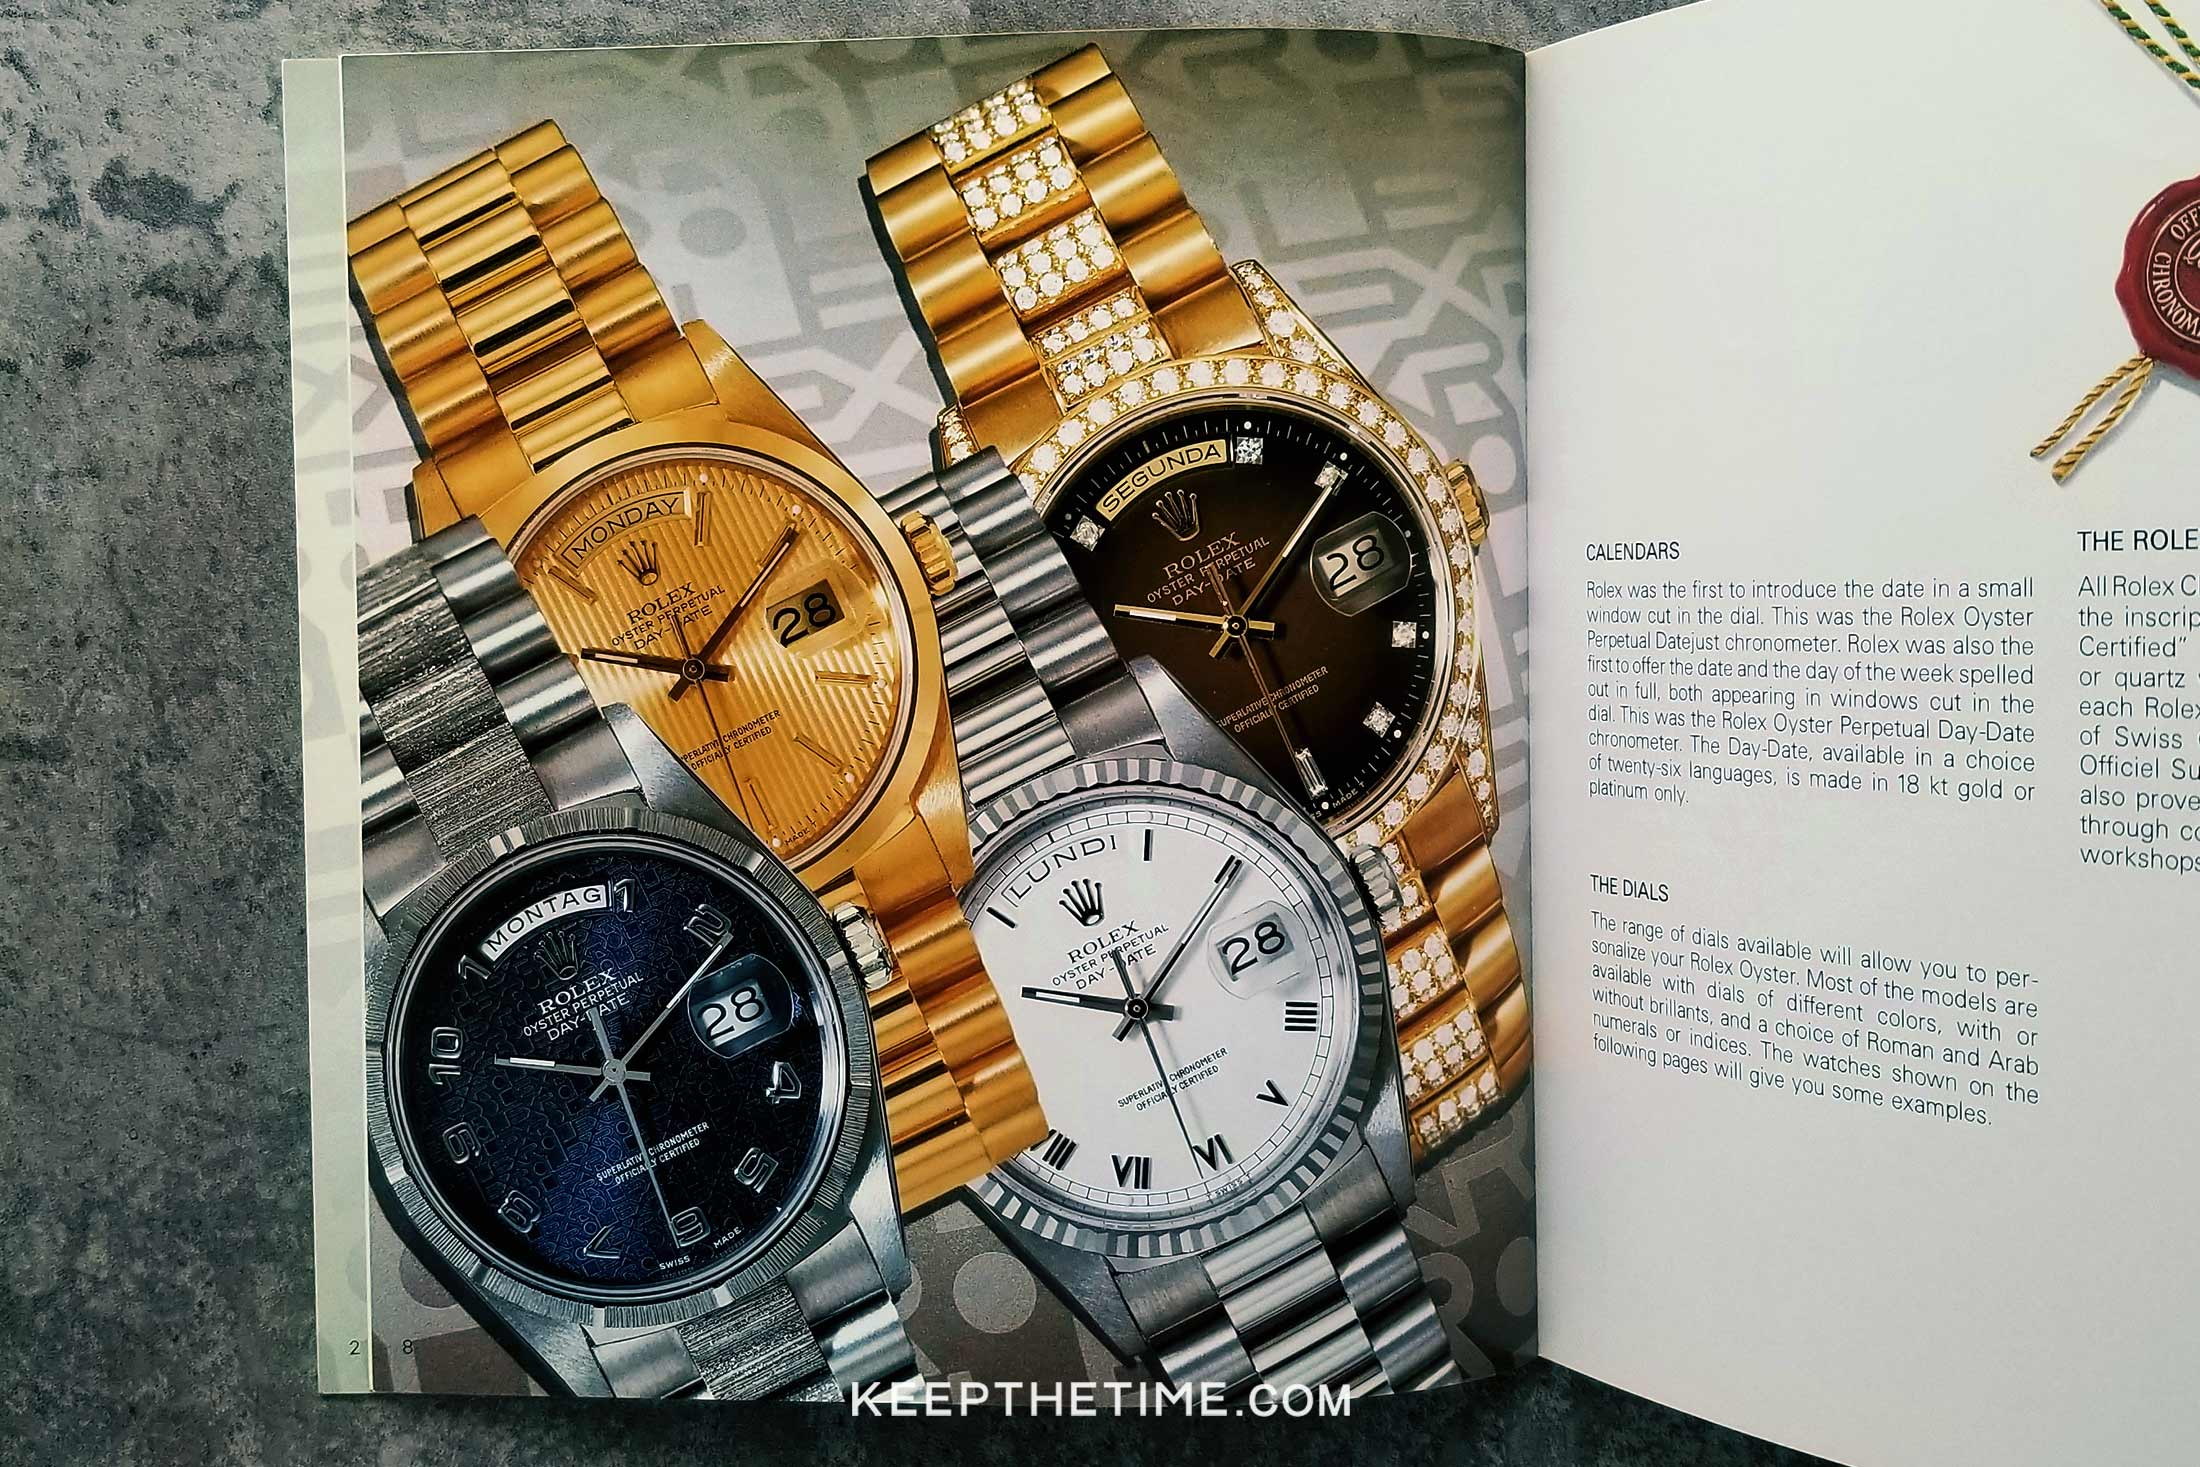 Rolex Oyster Catalog from 1991